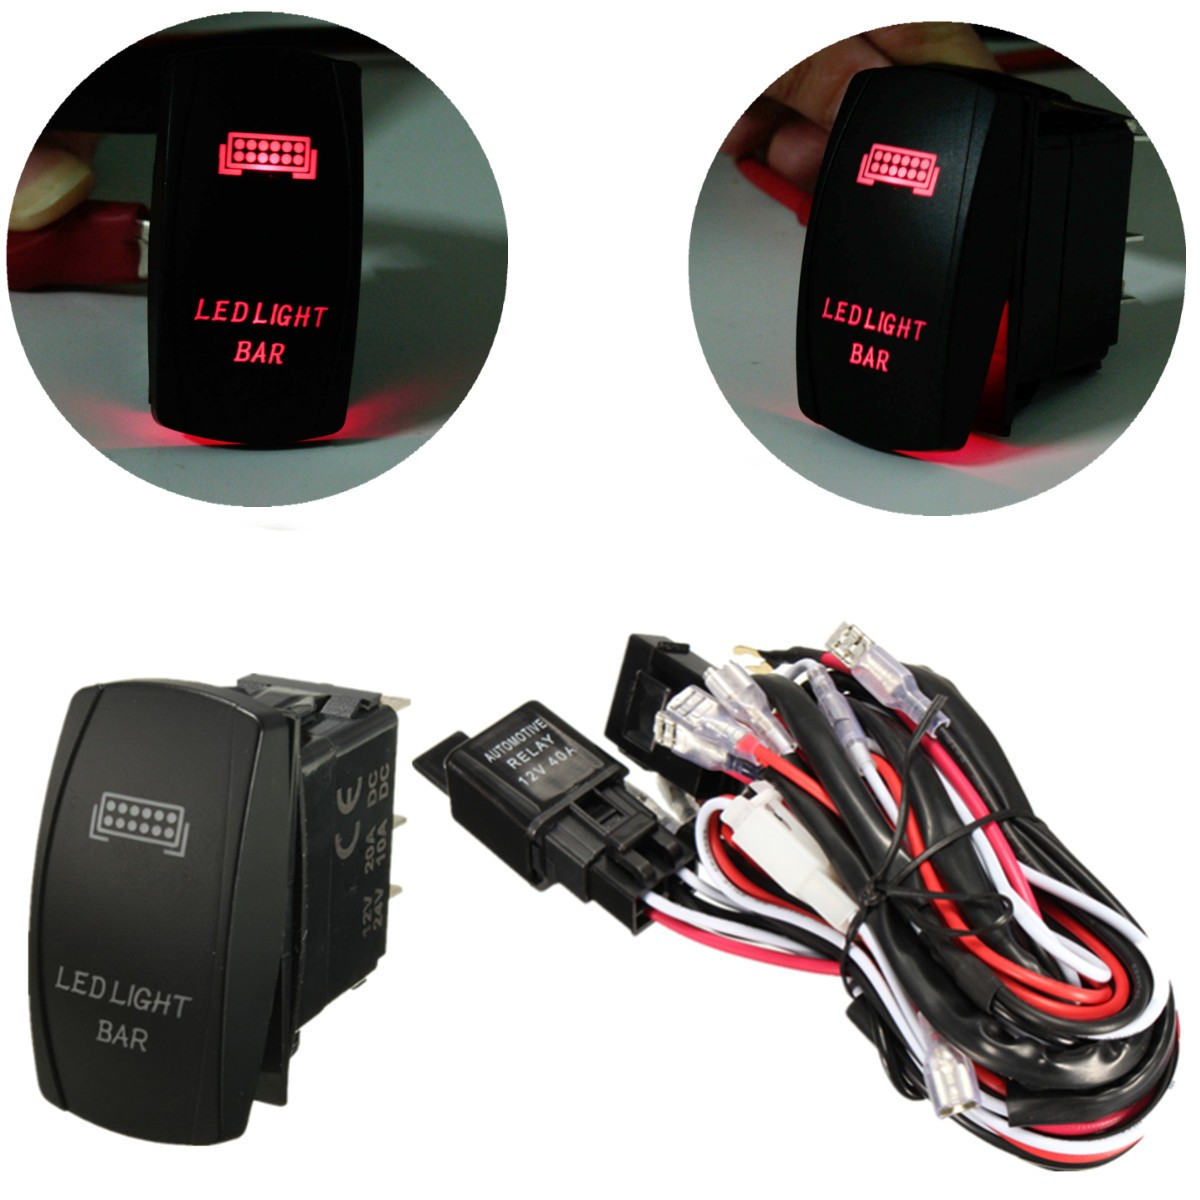 hight resolution of rocker switch wiring harness 12v 40a 300w relay fuse led light bar 5 pin laser matcc